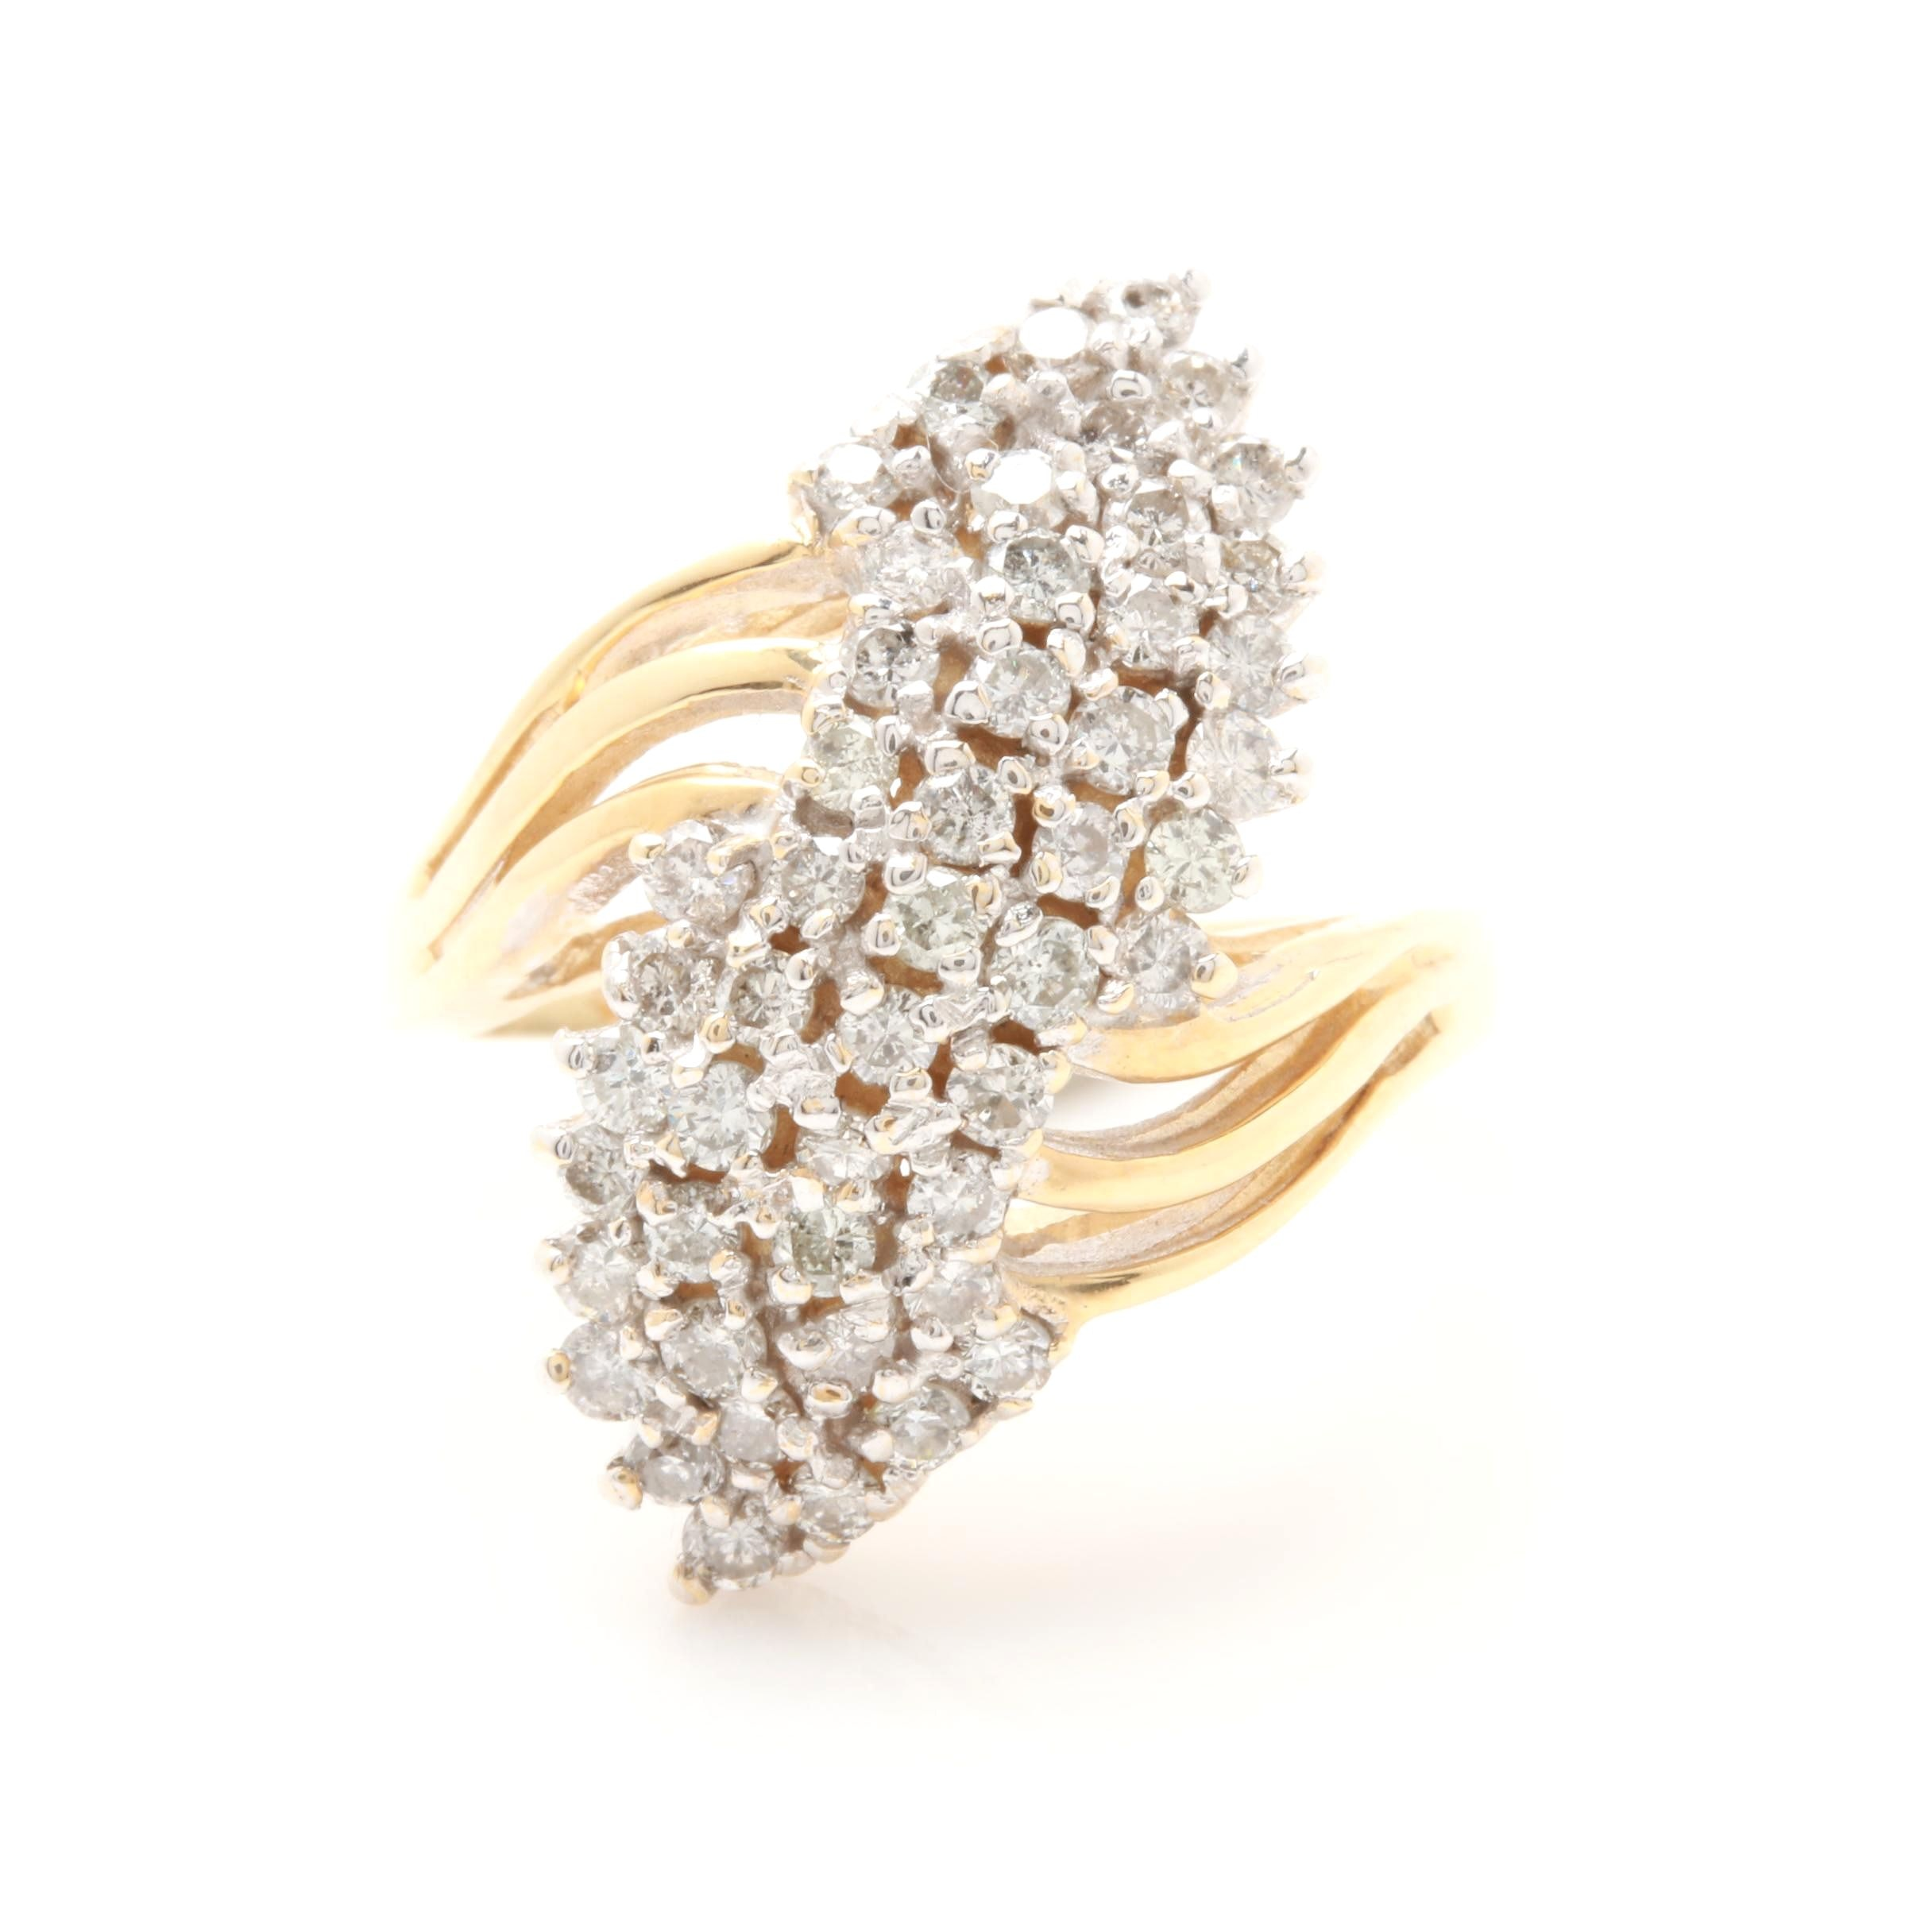 14K Yellow Gold 1.00 CTW Diamond Ring